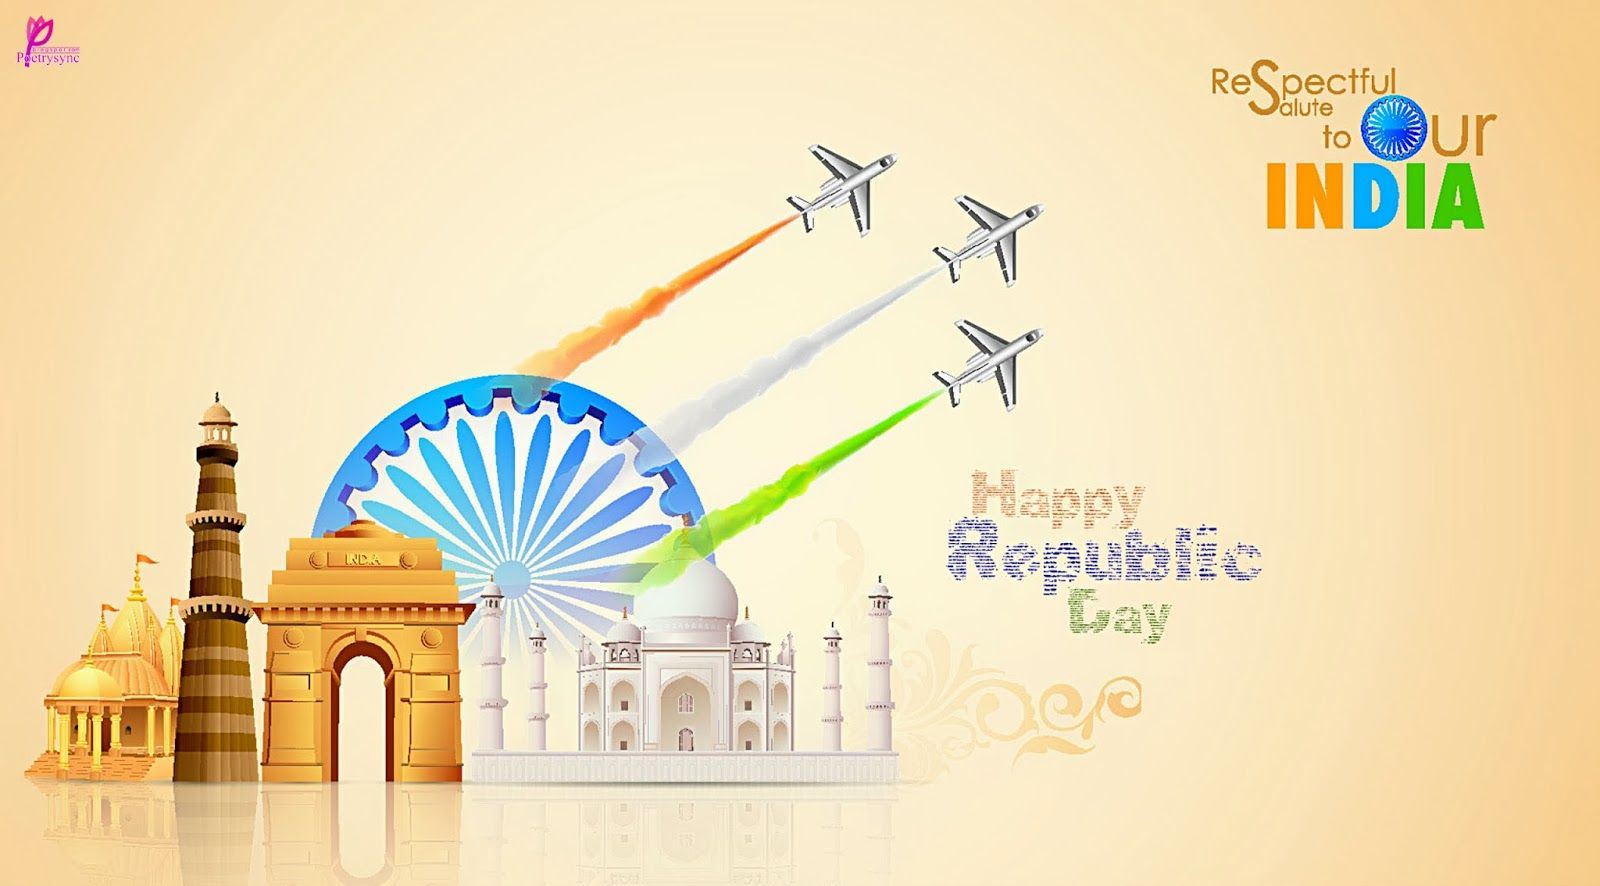 Republic day of india greetings wallpaper 26 january republic day republic day beautiful wallpapers and 26 january hindi sms messages collection m4hsunfo